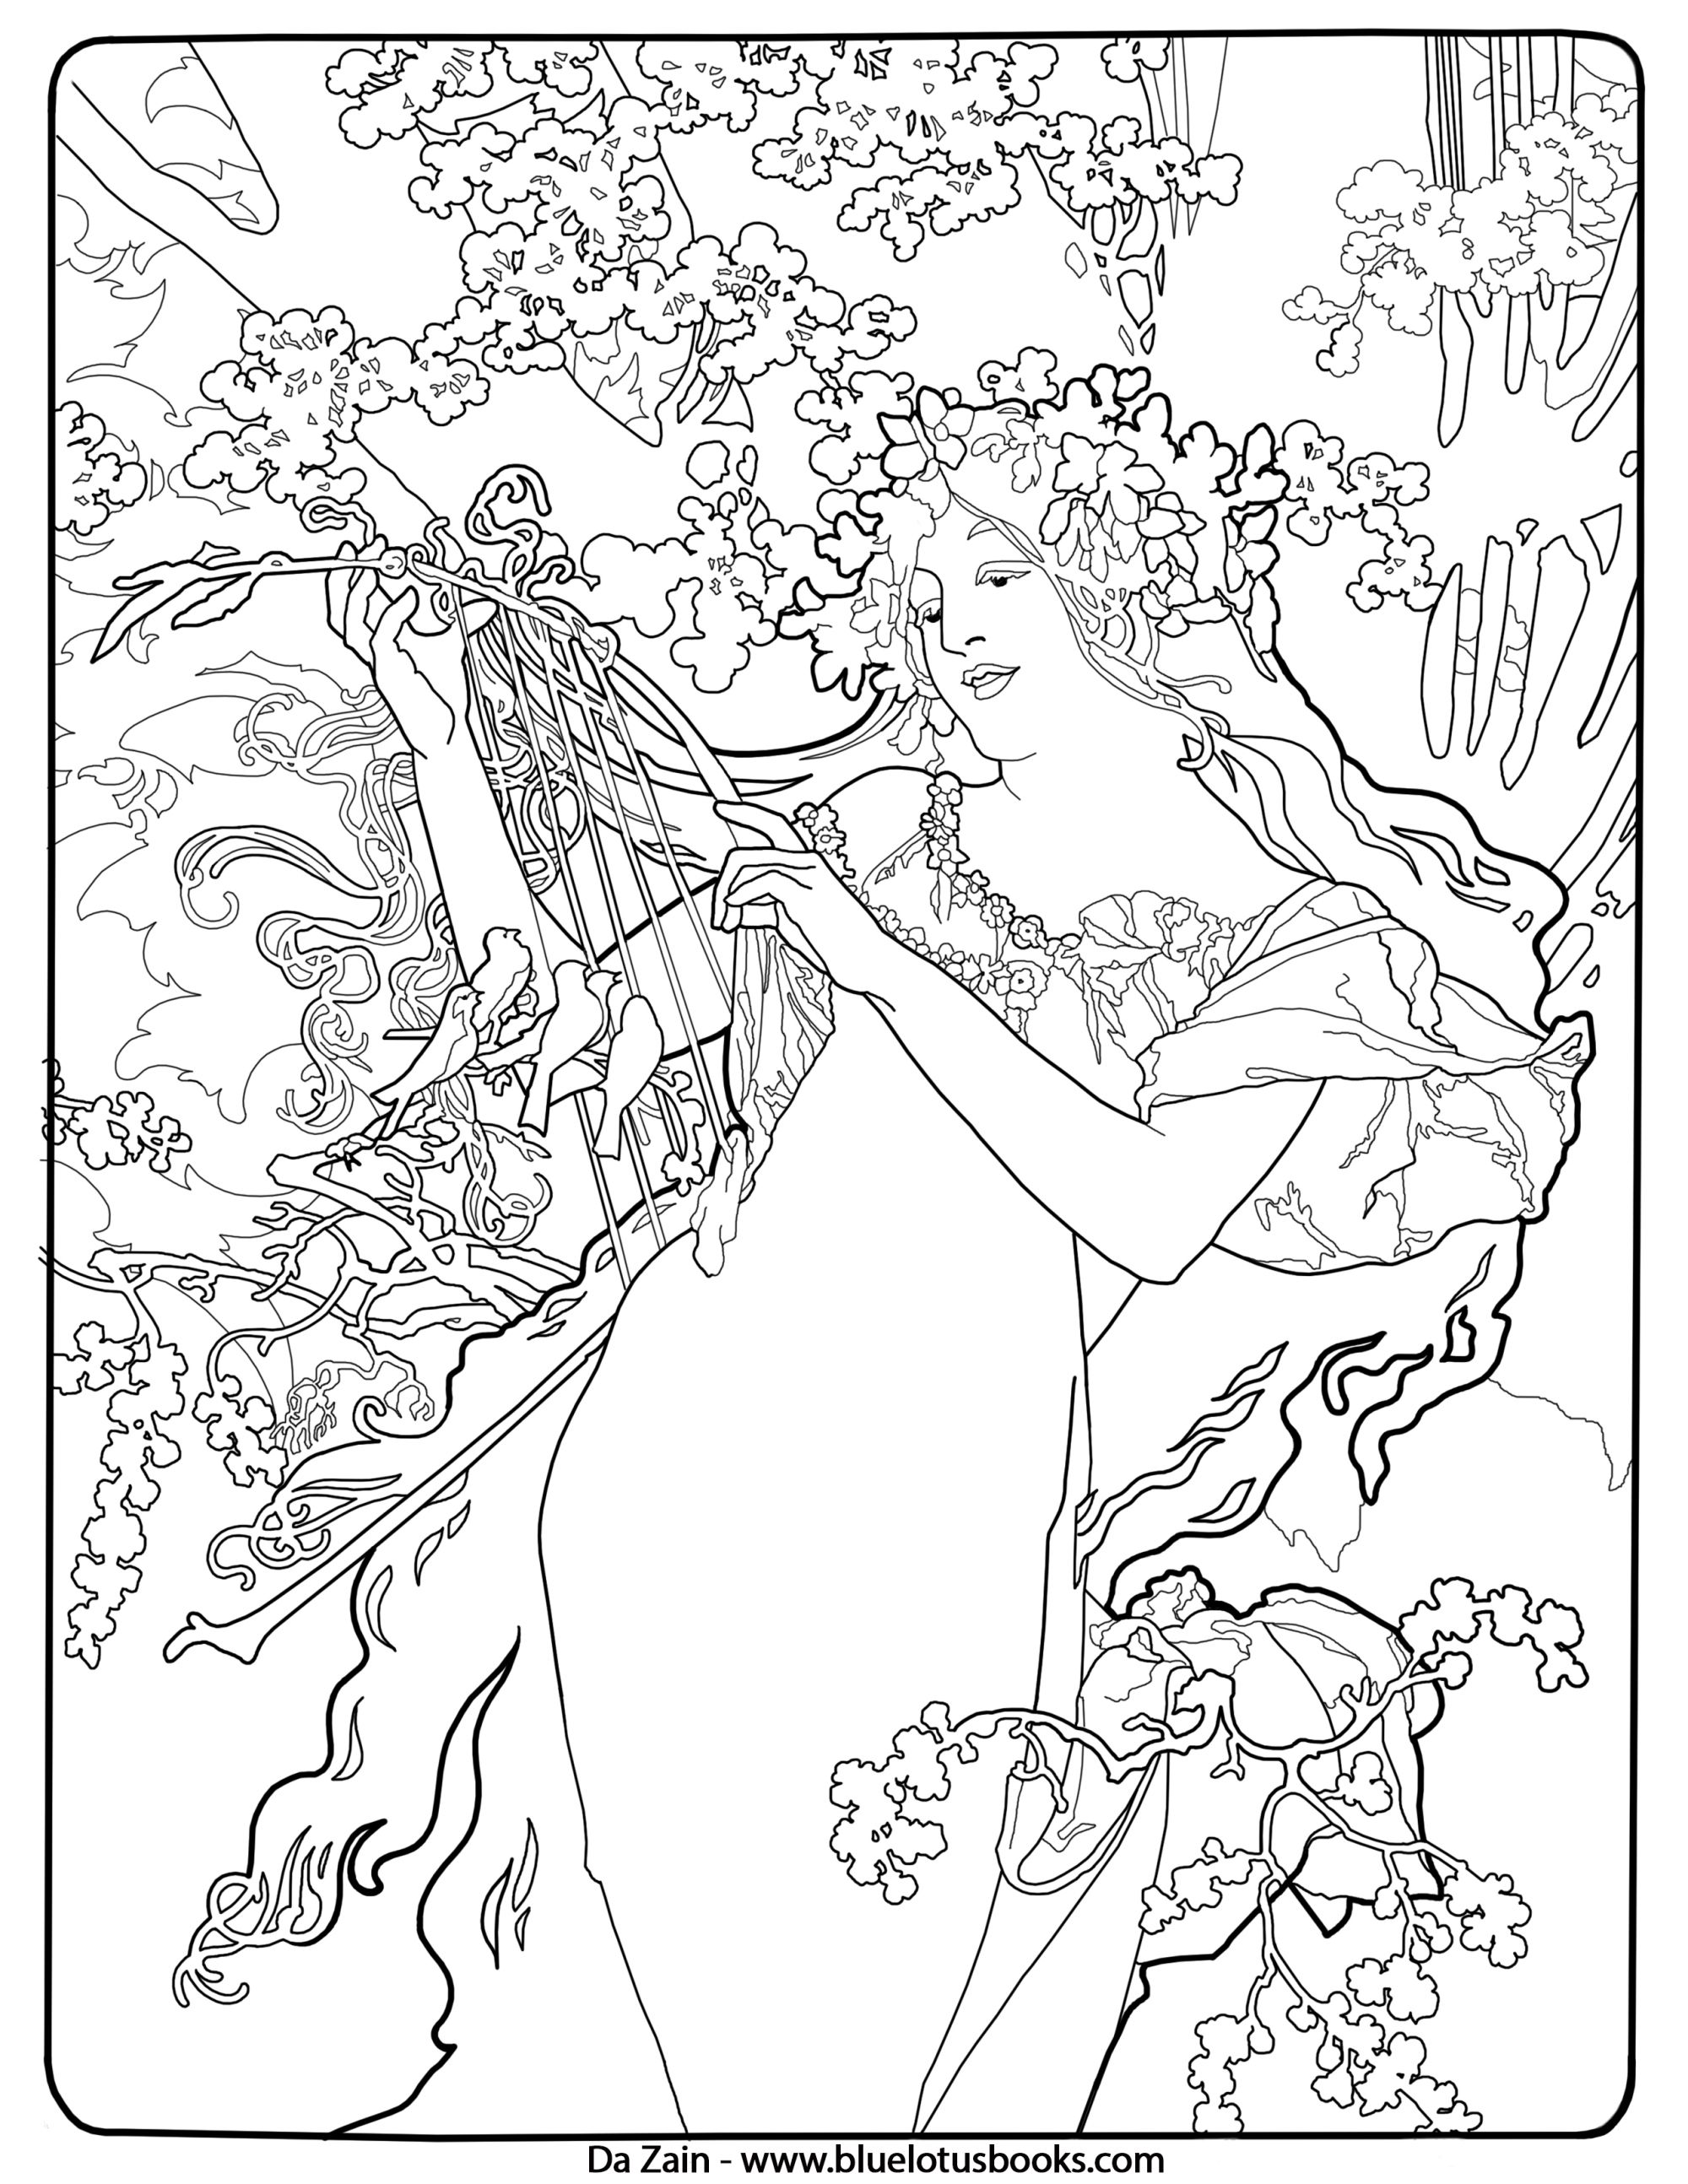 2000x2588 Free Coloring Pages From Adult Coloring Worldwide Art Brought